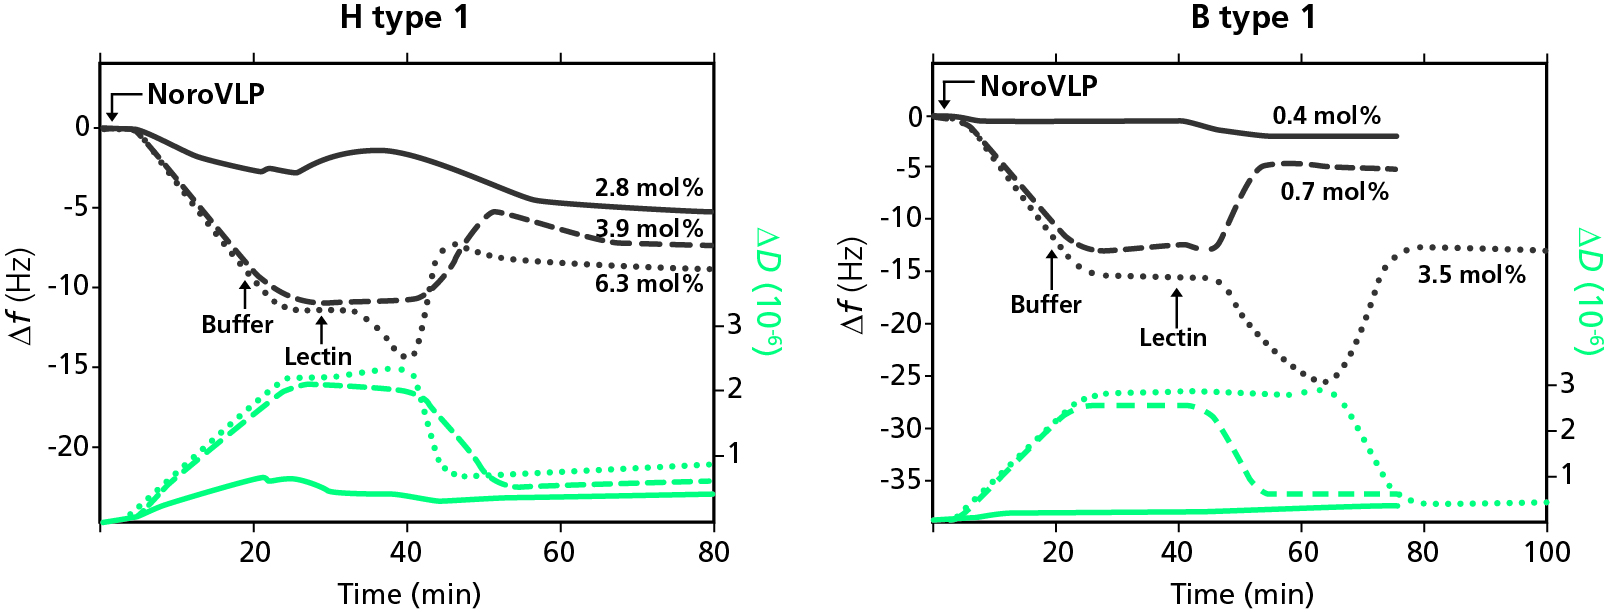 Fig Noro VLP Lectin raw data